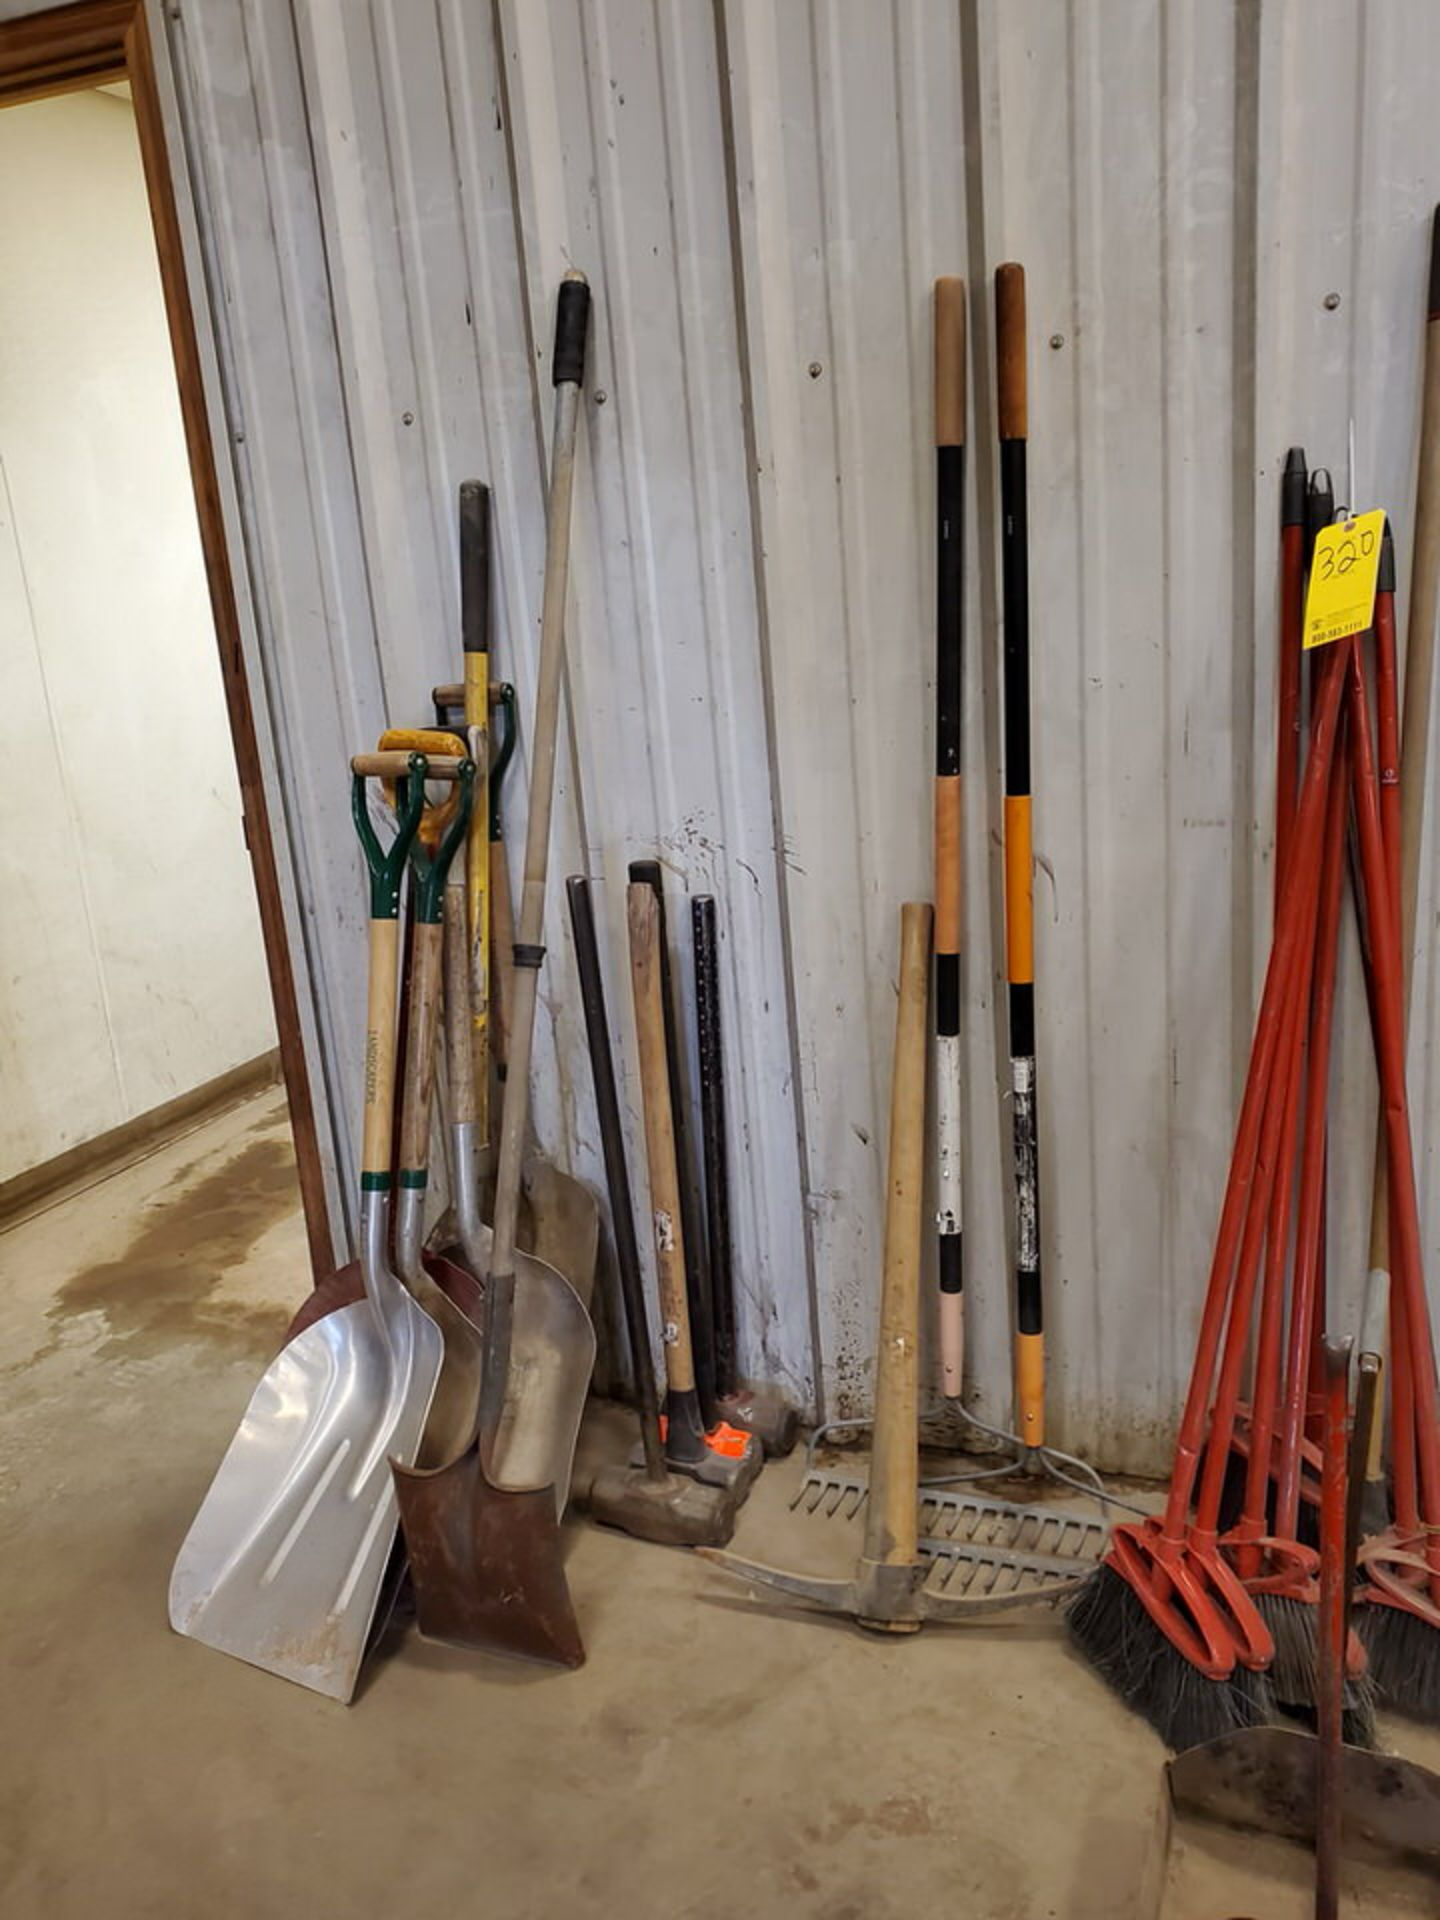 Assorted Cleaning & Yard Matl To Include But Not Limited To: Brooms, Shovels, Rakes, Dust Pans, - Image 2 of 6